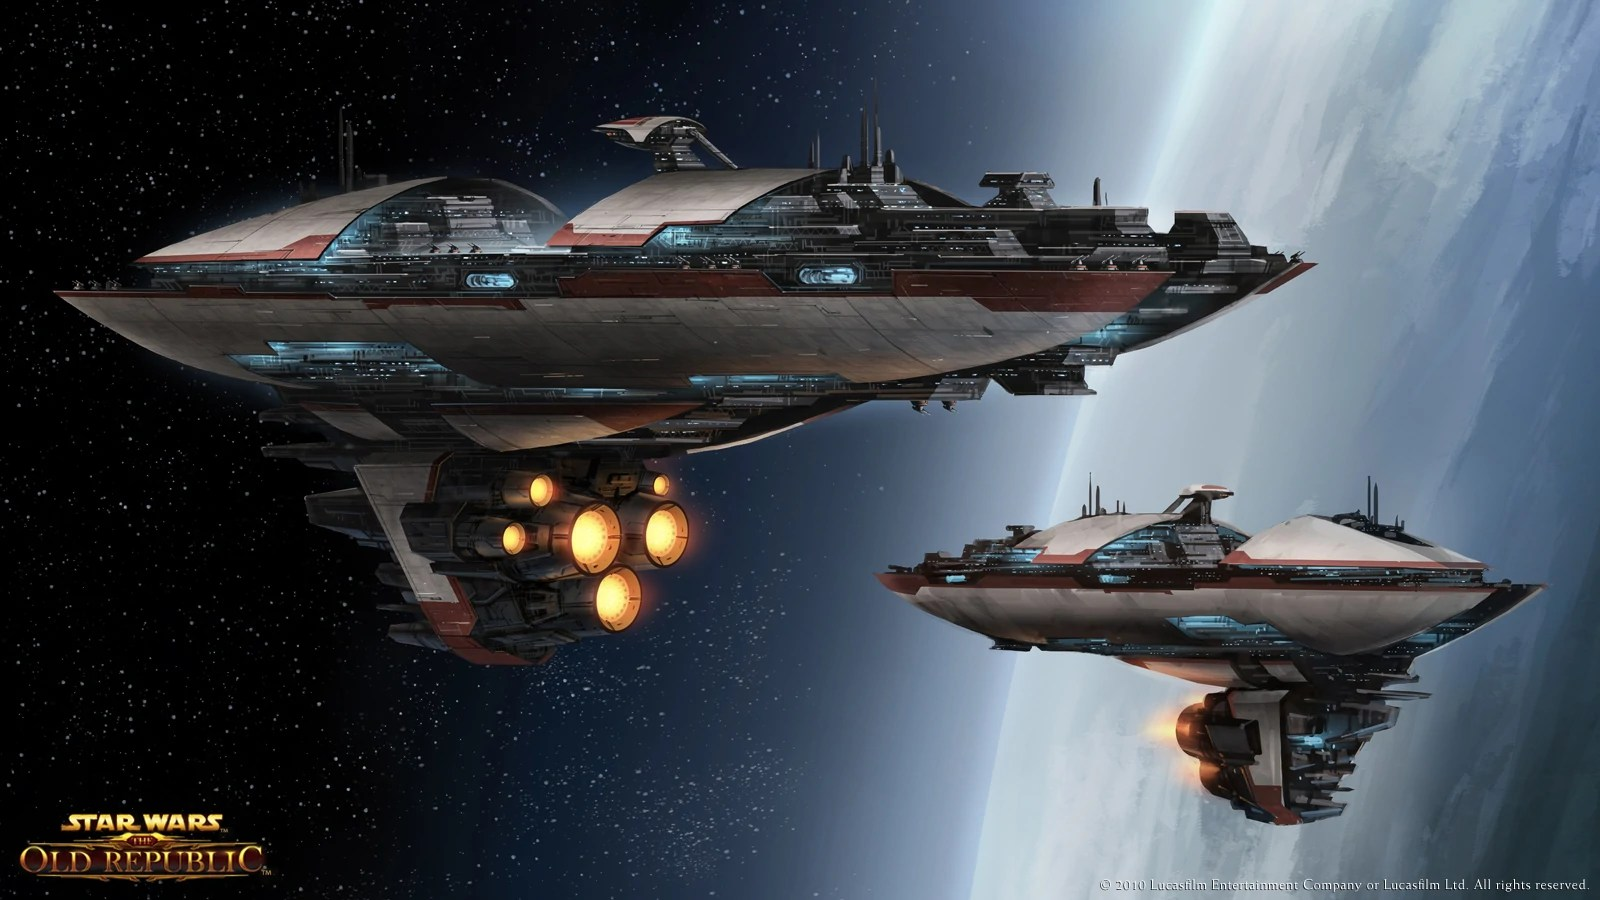 Star Wars Old Republic Capital Ship